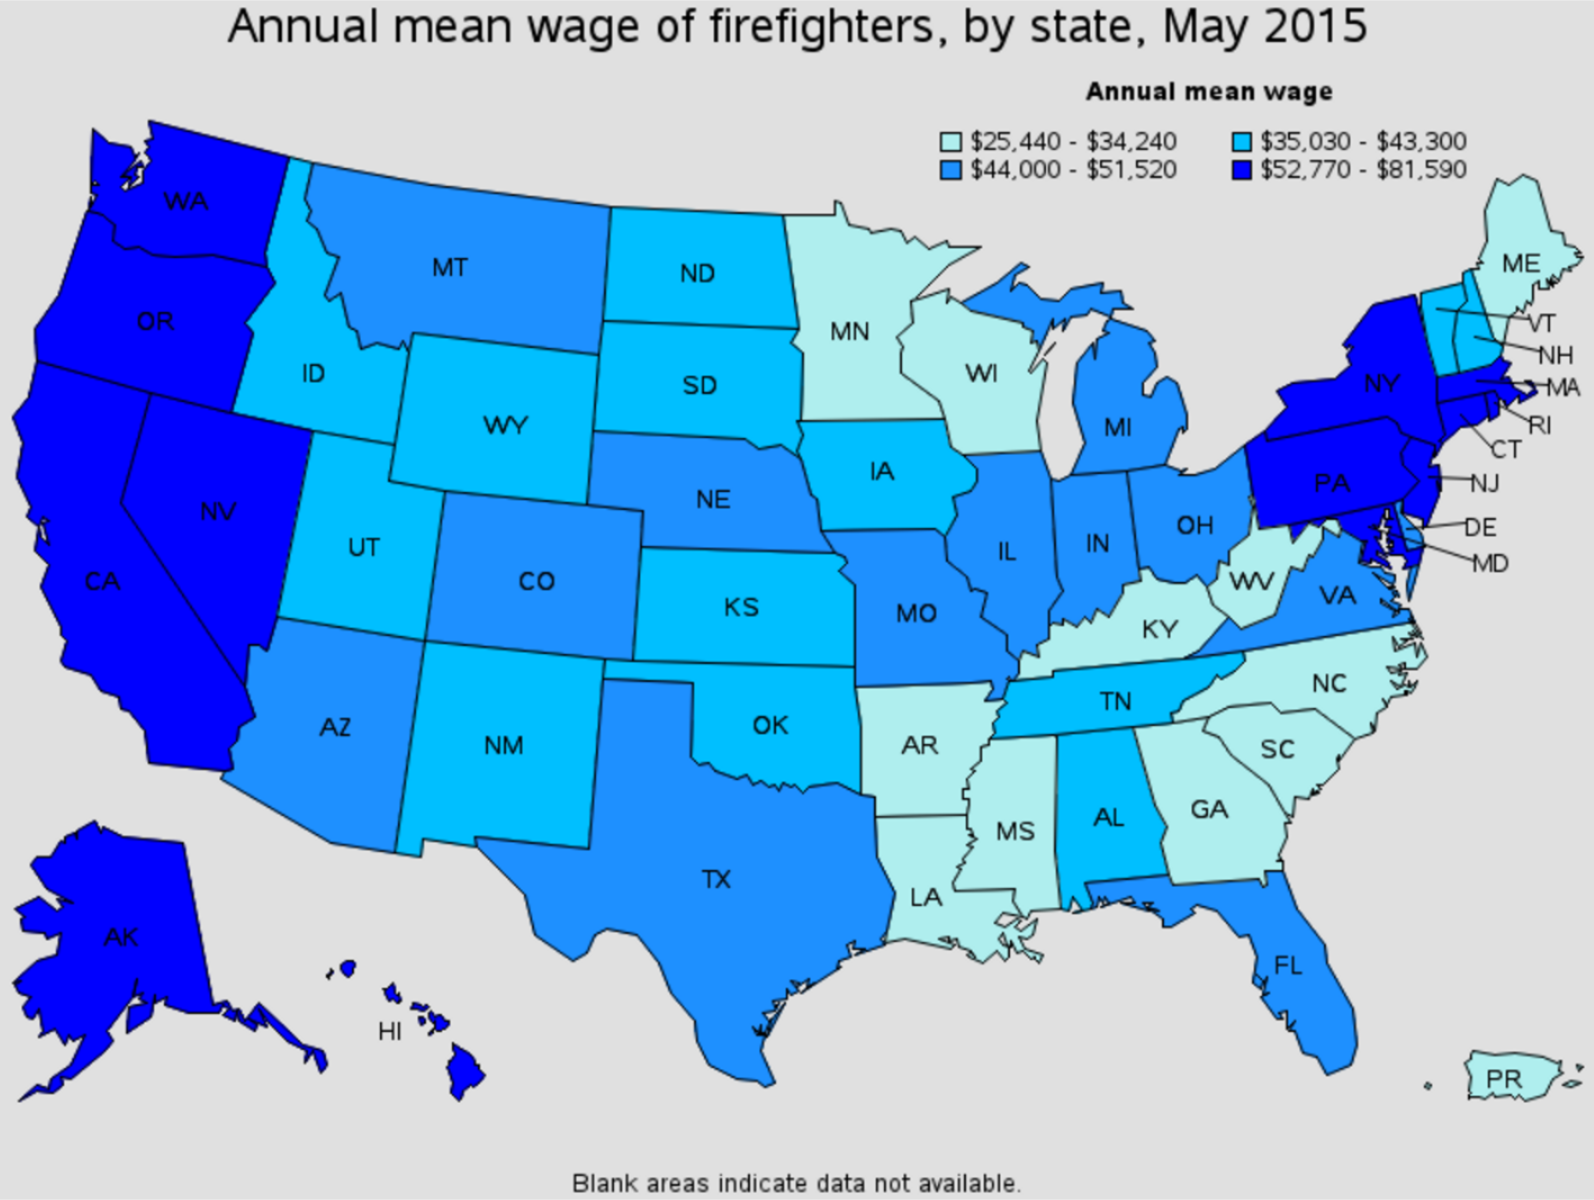 firefighter average salary by state Dayton Ohio